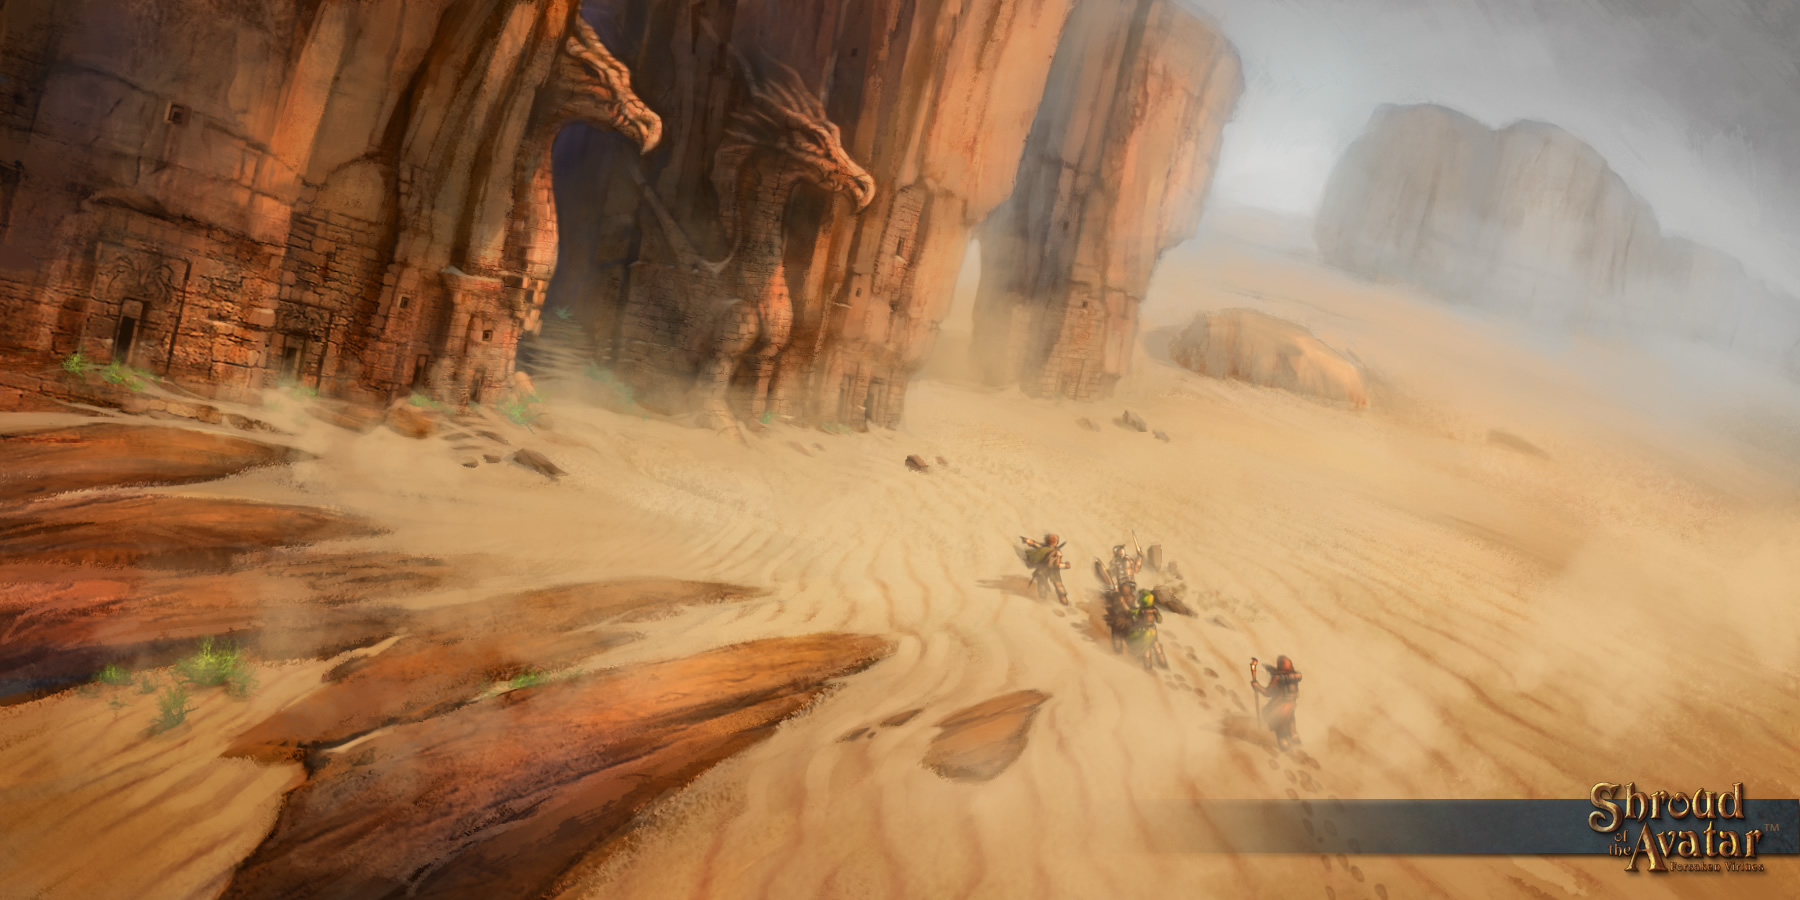 Shroud of the avatar chiude la sua campagna kickstarter for Milioni di dollari piantine